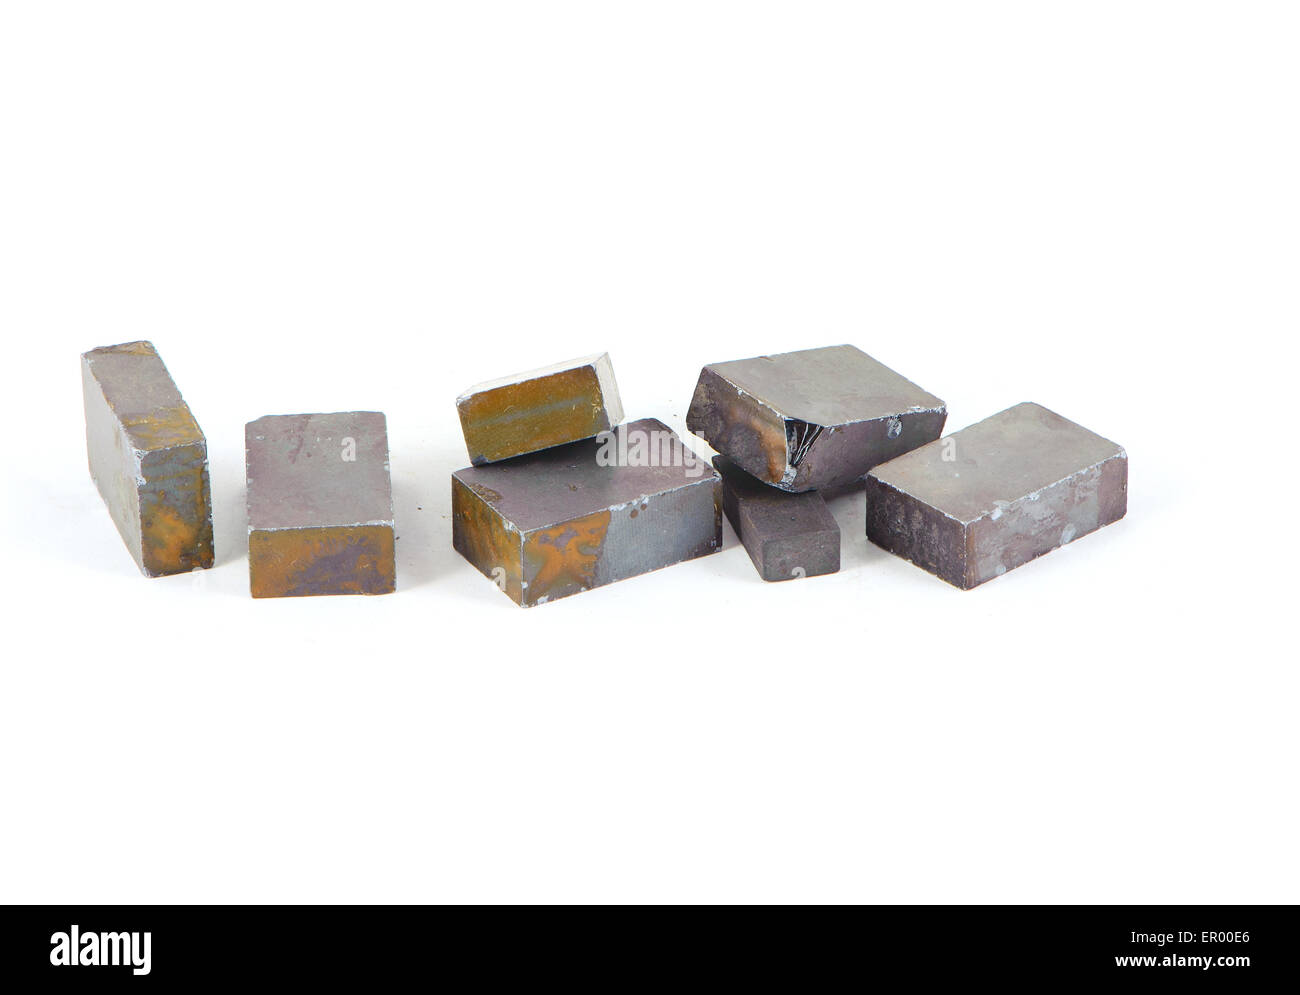 assay, bit, borehole, borer, burr, carbide, chisel, construction, cutter, cutting, diamond, drill, engineering, - Stock Image